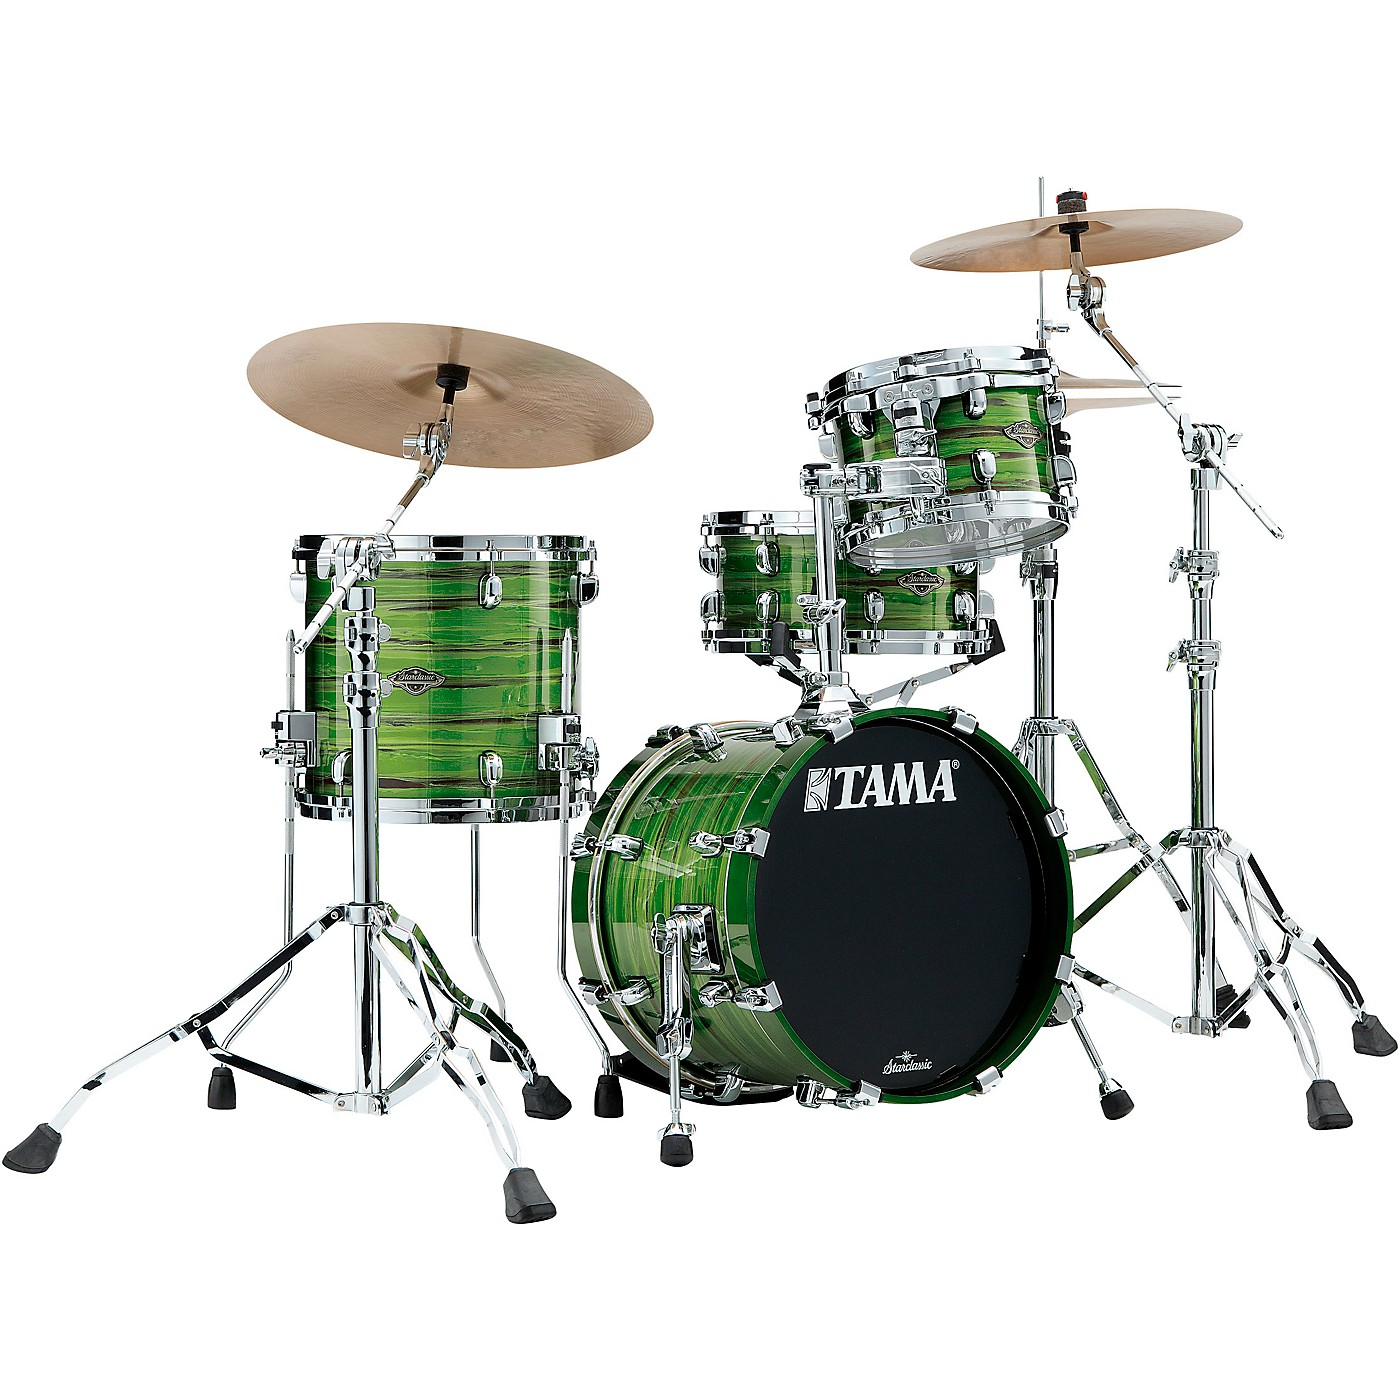 TAMA Starclassic Walnut/Birch 3-Piece Shell Pack with 16 in. Bass Drum thumbnail